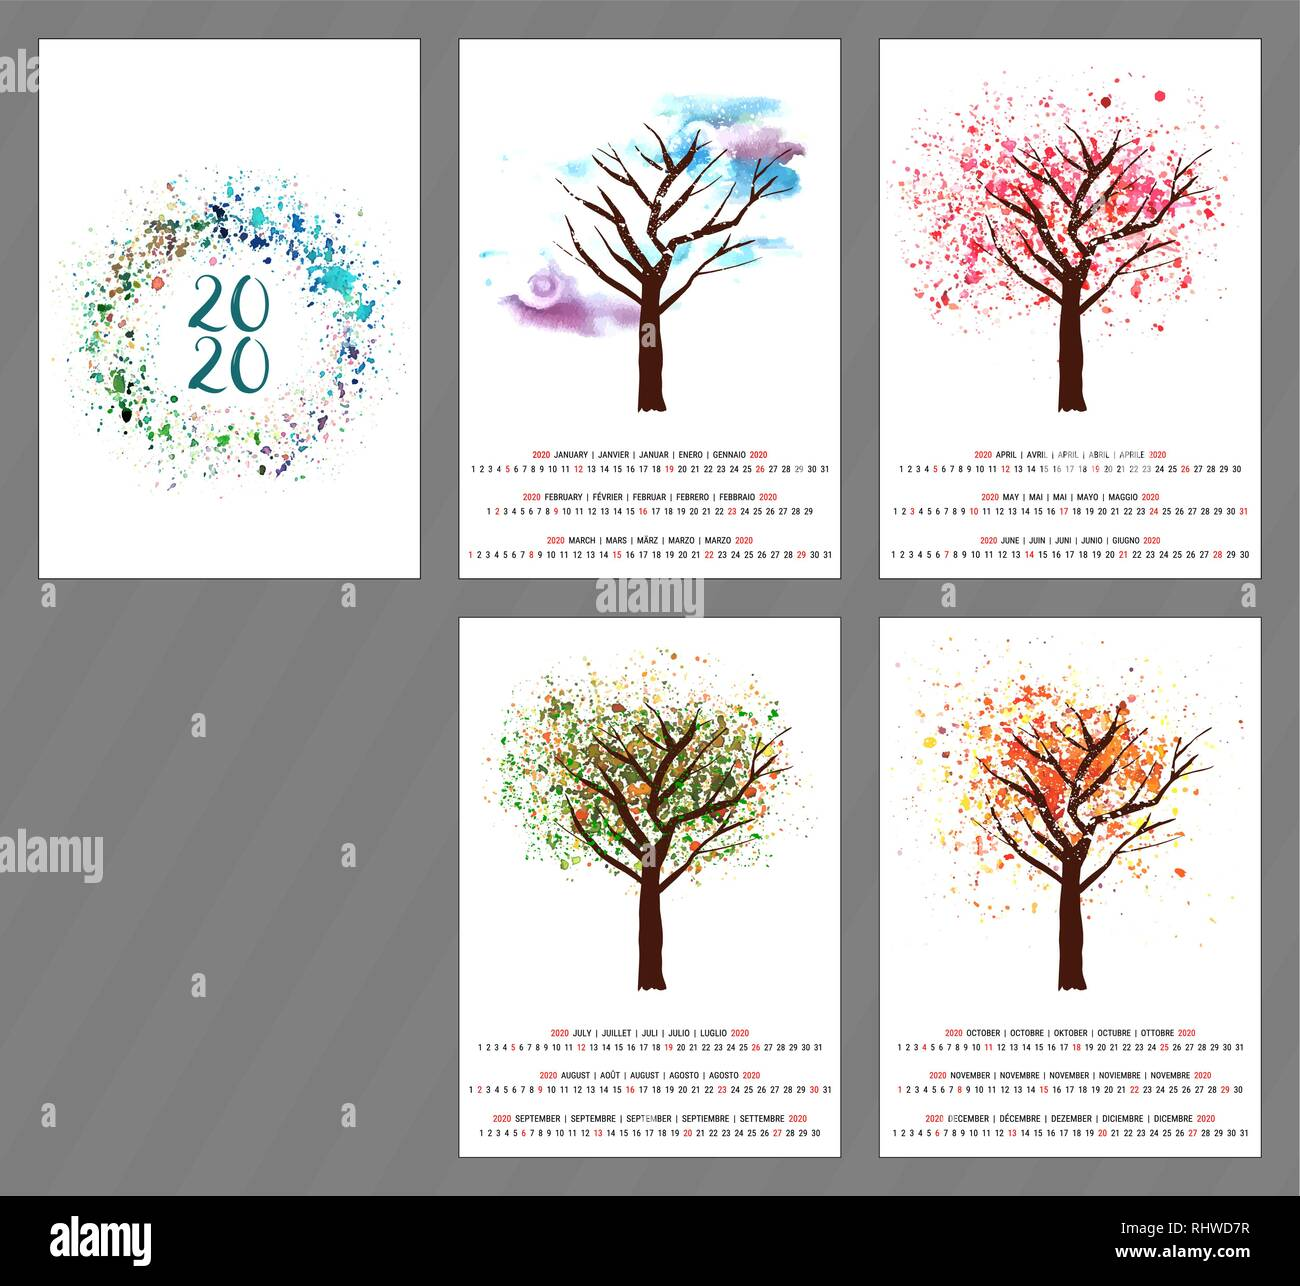 Calendario Gaf 2020.English Calendar Page Stock Photos English Calendar Page